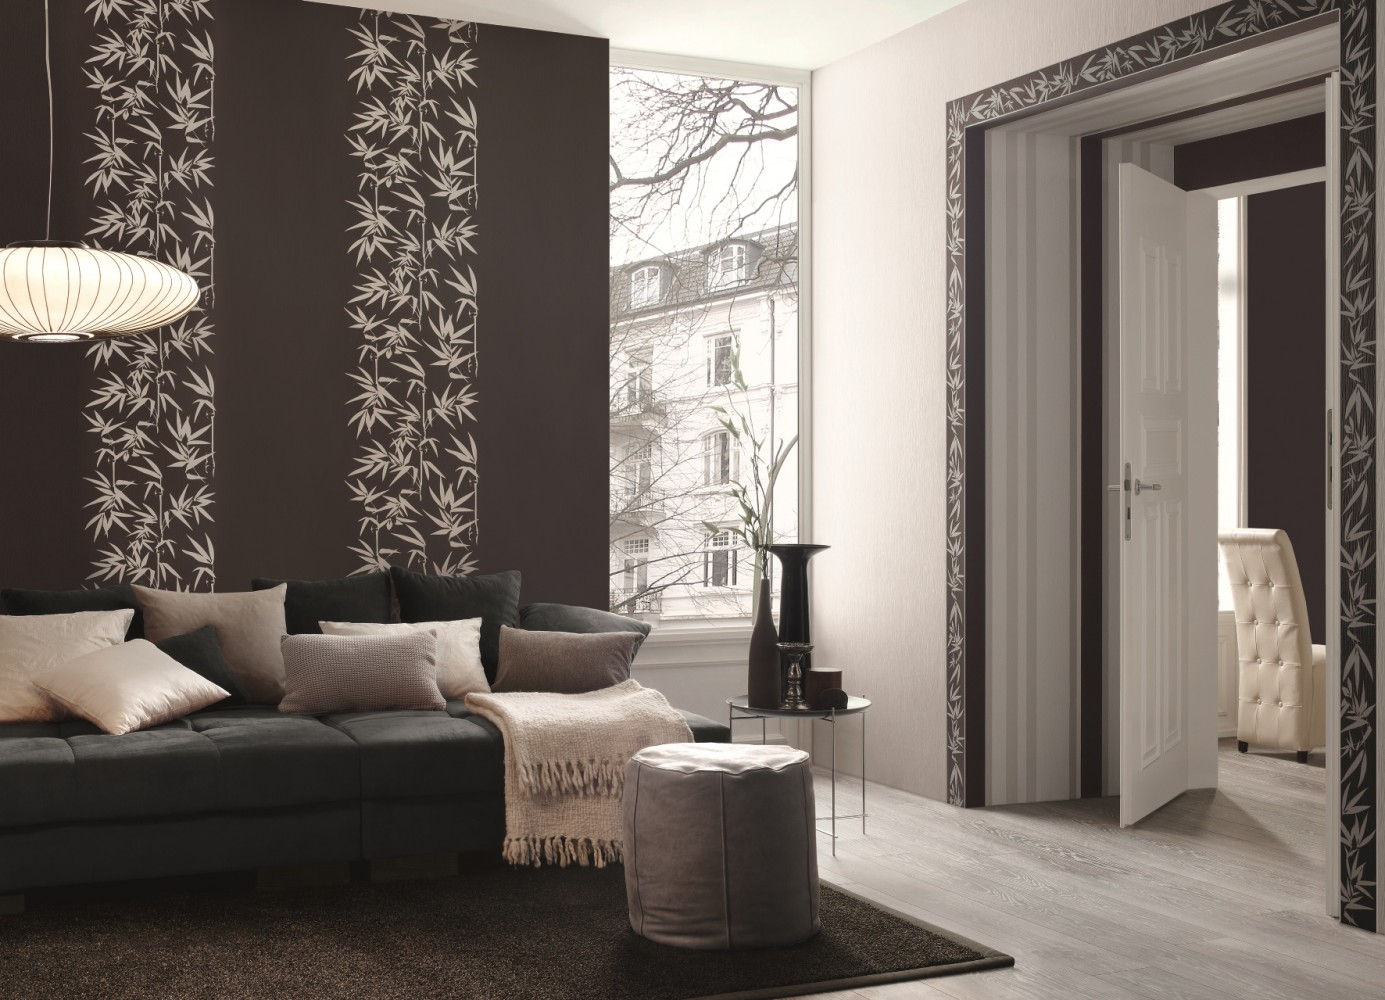 vliestapete jette joop natur grau wei 2936 40. Black Bedroom Furniture Sets. Home Design Ideas